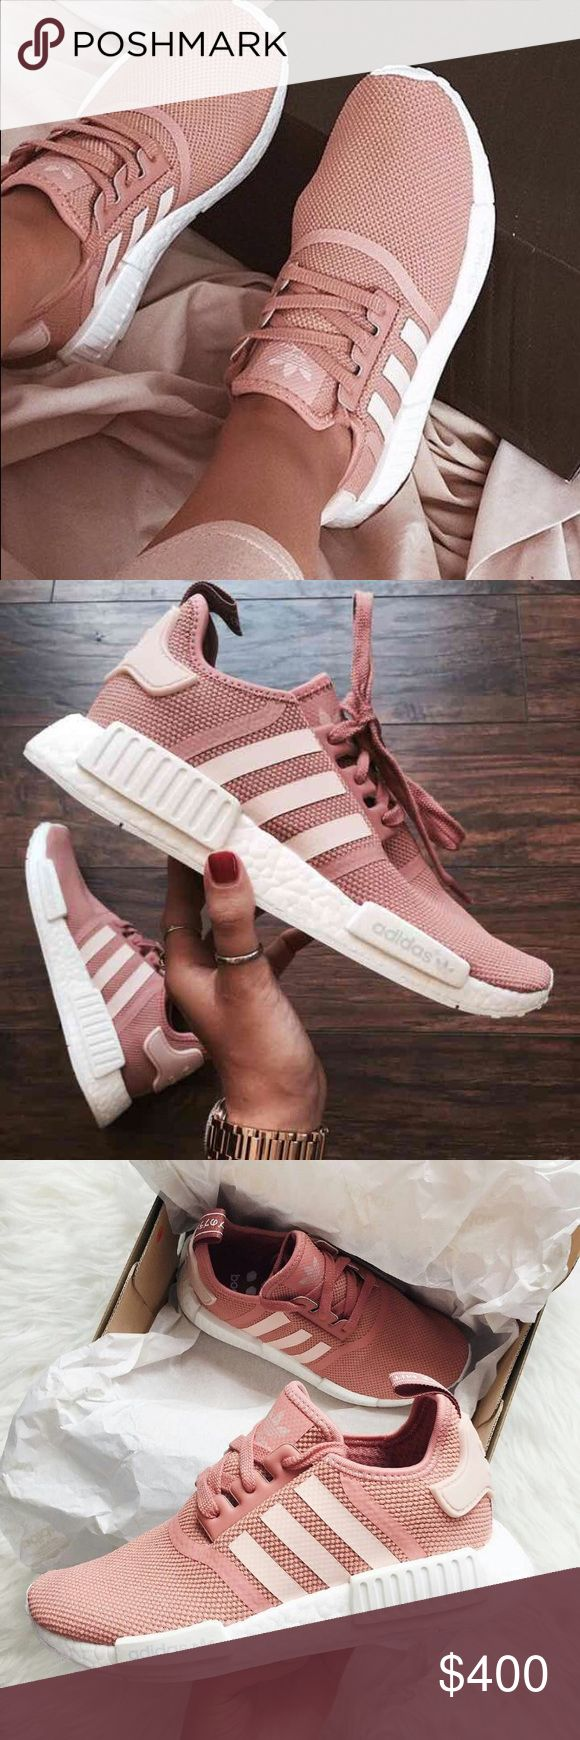 """NMD Raw Pink Adidas Brand New NMD Raw Pink Adidas releases a women's exclusive pair of the NMD for the summer of 2016 with the release of the adidas NMD """"Raw Pink."""" The sneaker features a tonal raw pink upper sitting on an all-white Boost outsole. They fit 0.5 big so better fit for a size 8.5 they are a size 8. These are authentic and SOLD OUT everywhere so they go for a higher price Adidas Shoes Sneakers"""